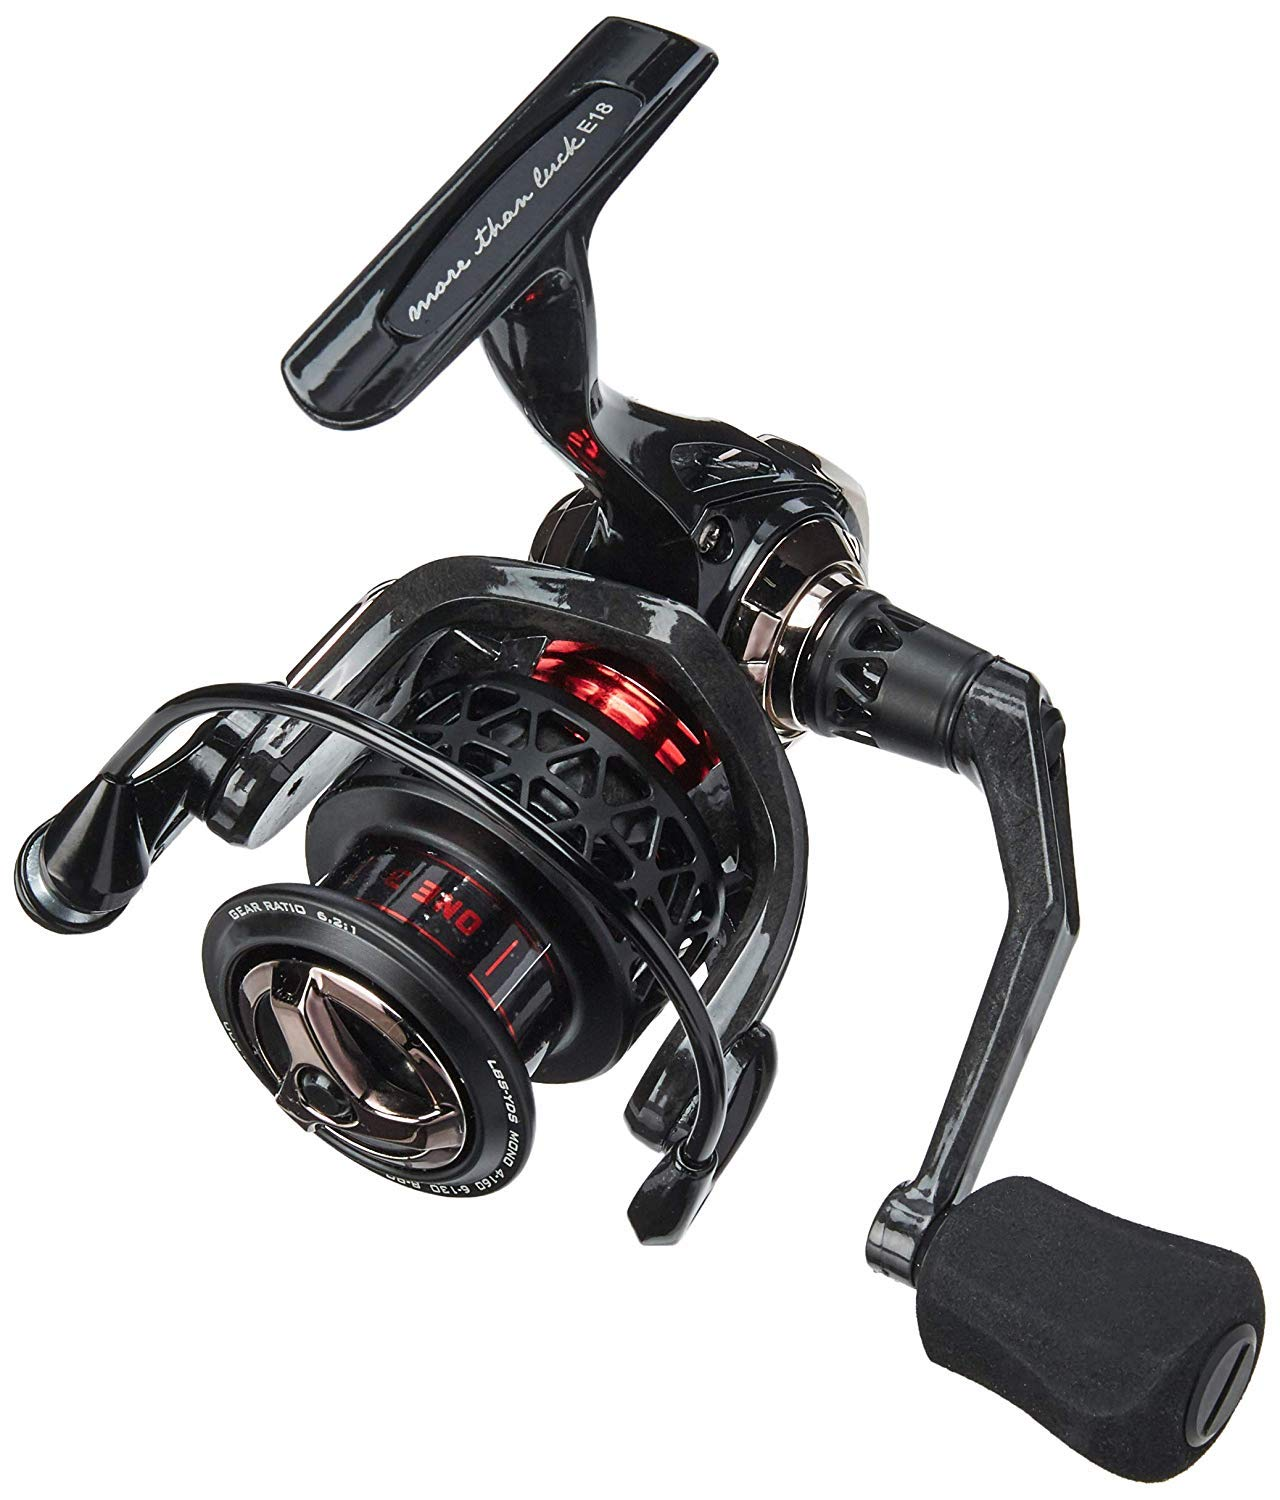 13 Creed GT 3000 Spinning Reel